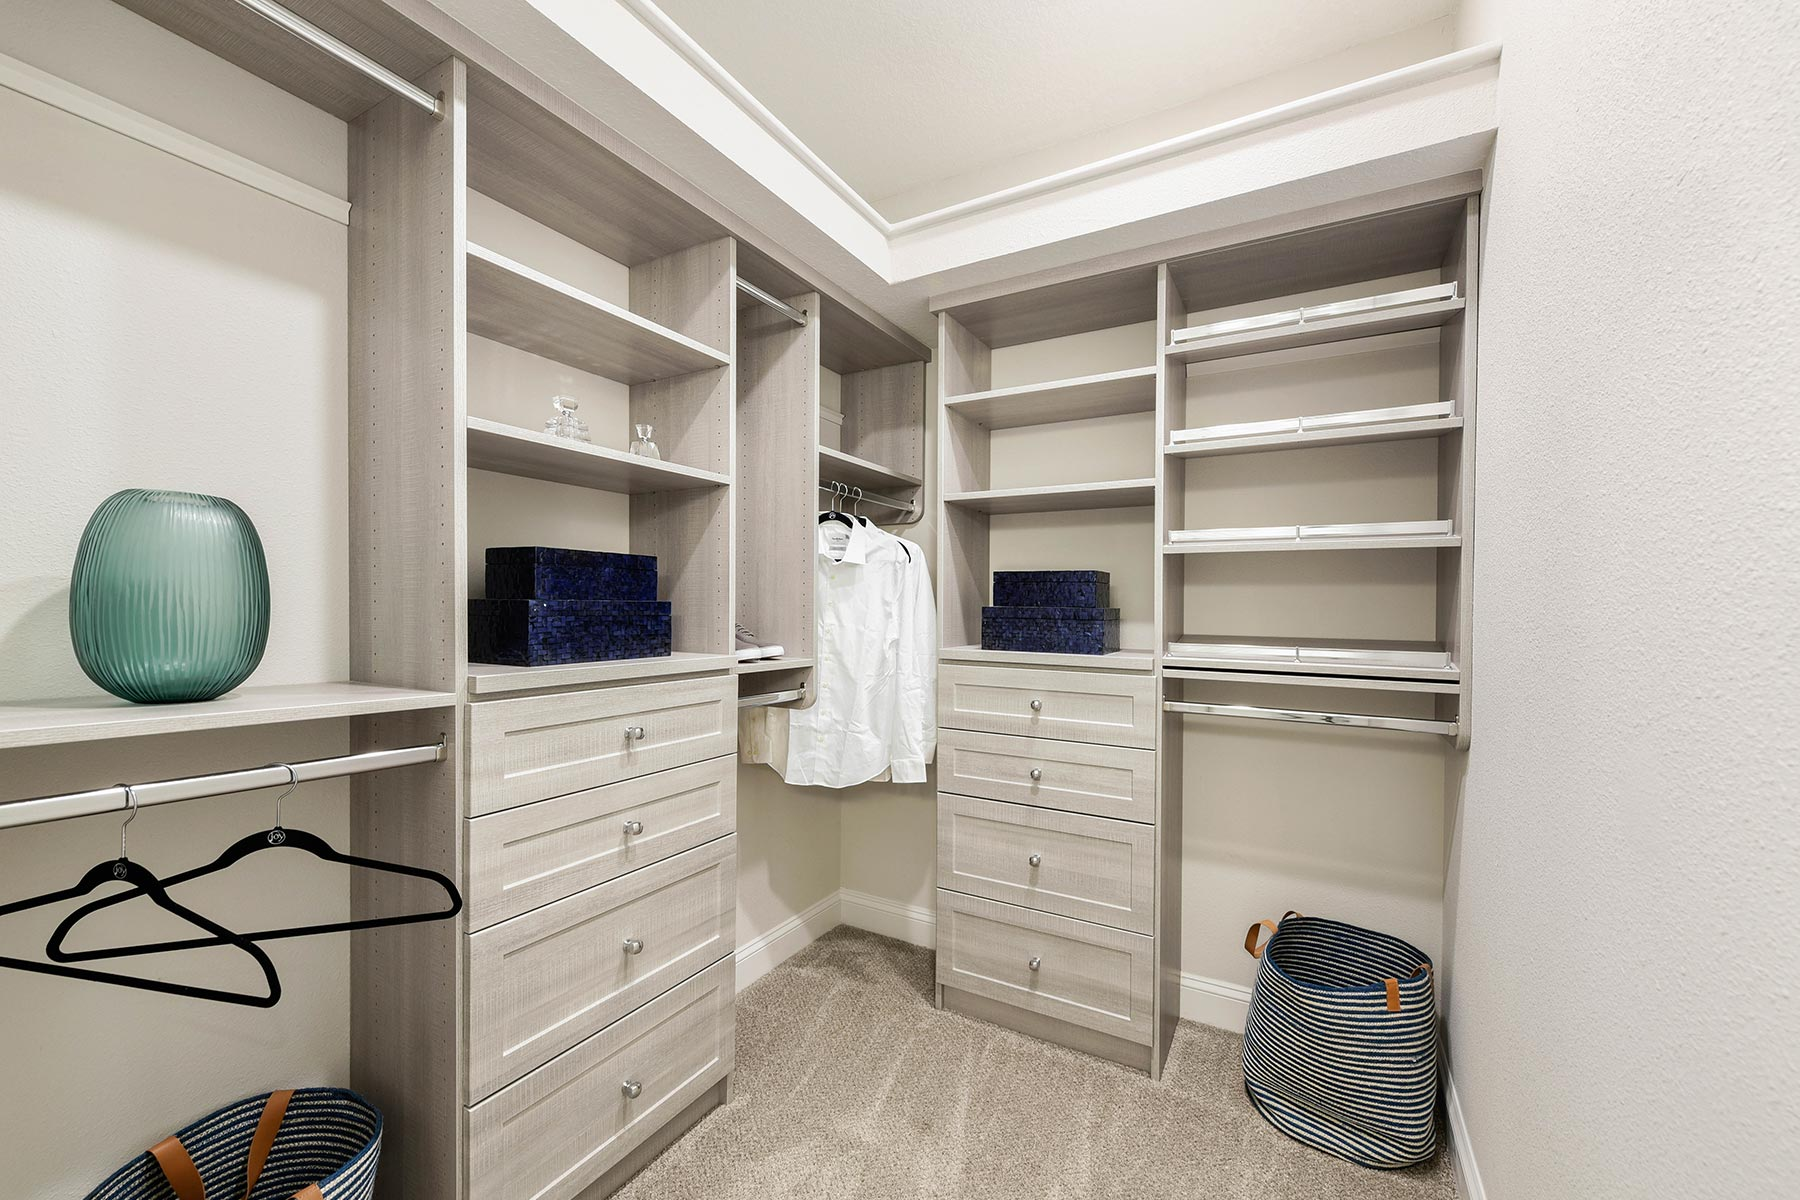 Ocean Plan Closet at RiverTown - WaterSong in St. Johns Florida by Mattamy Homes